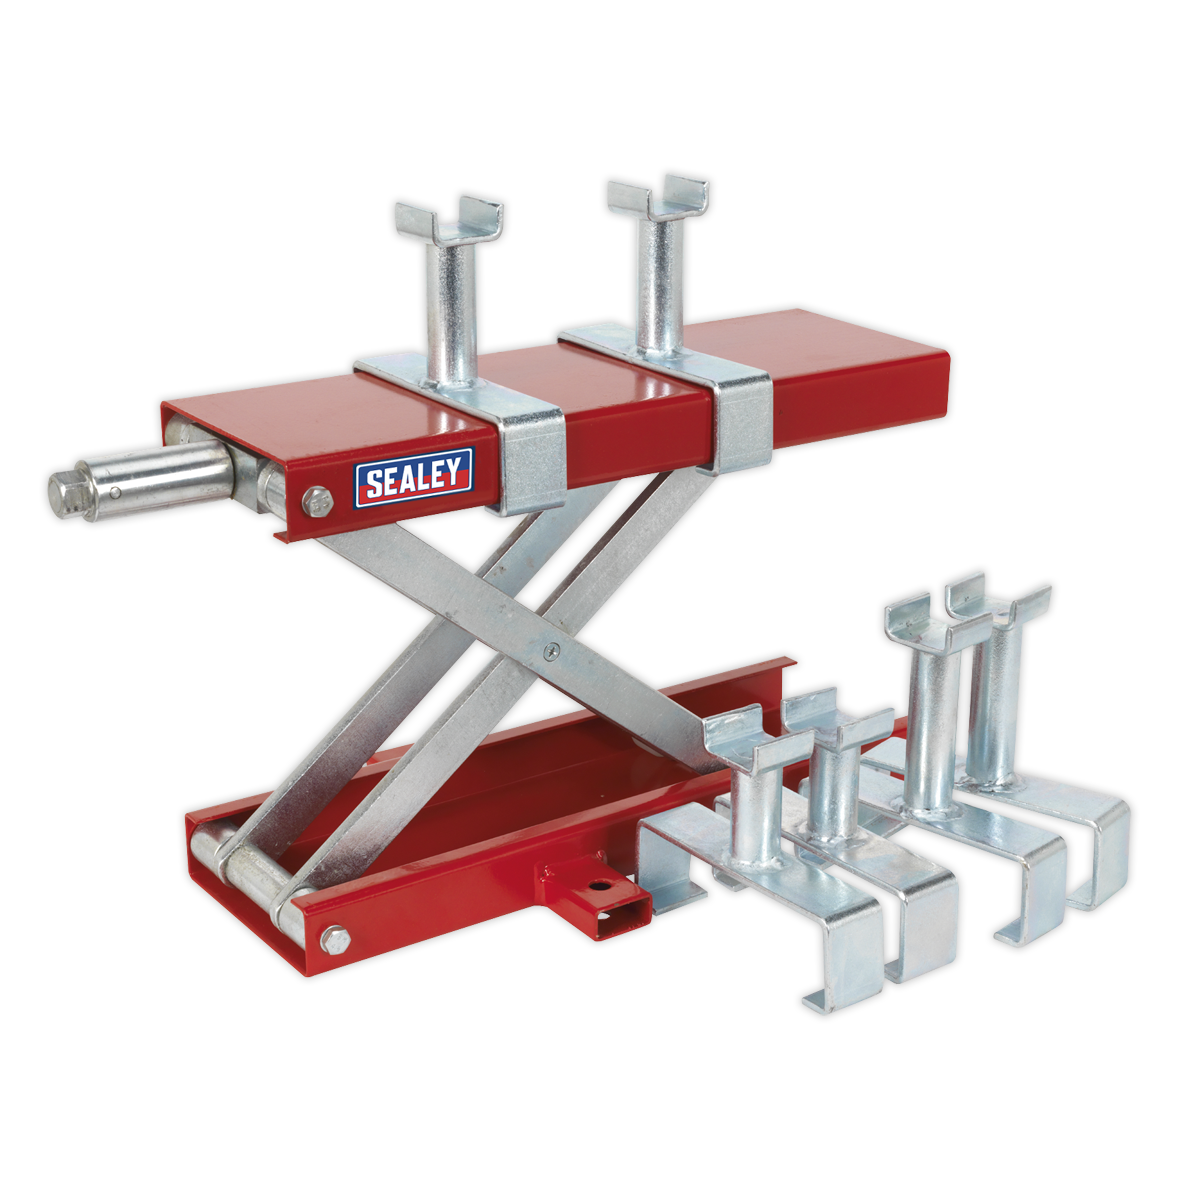 - Scissor Stand for Motorcycles 300kg SEALEY MC5905 by Sealey